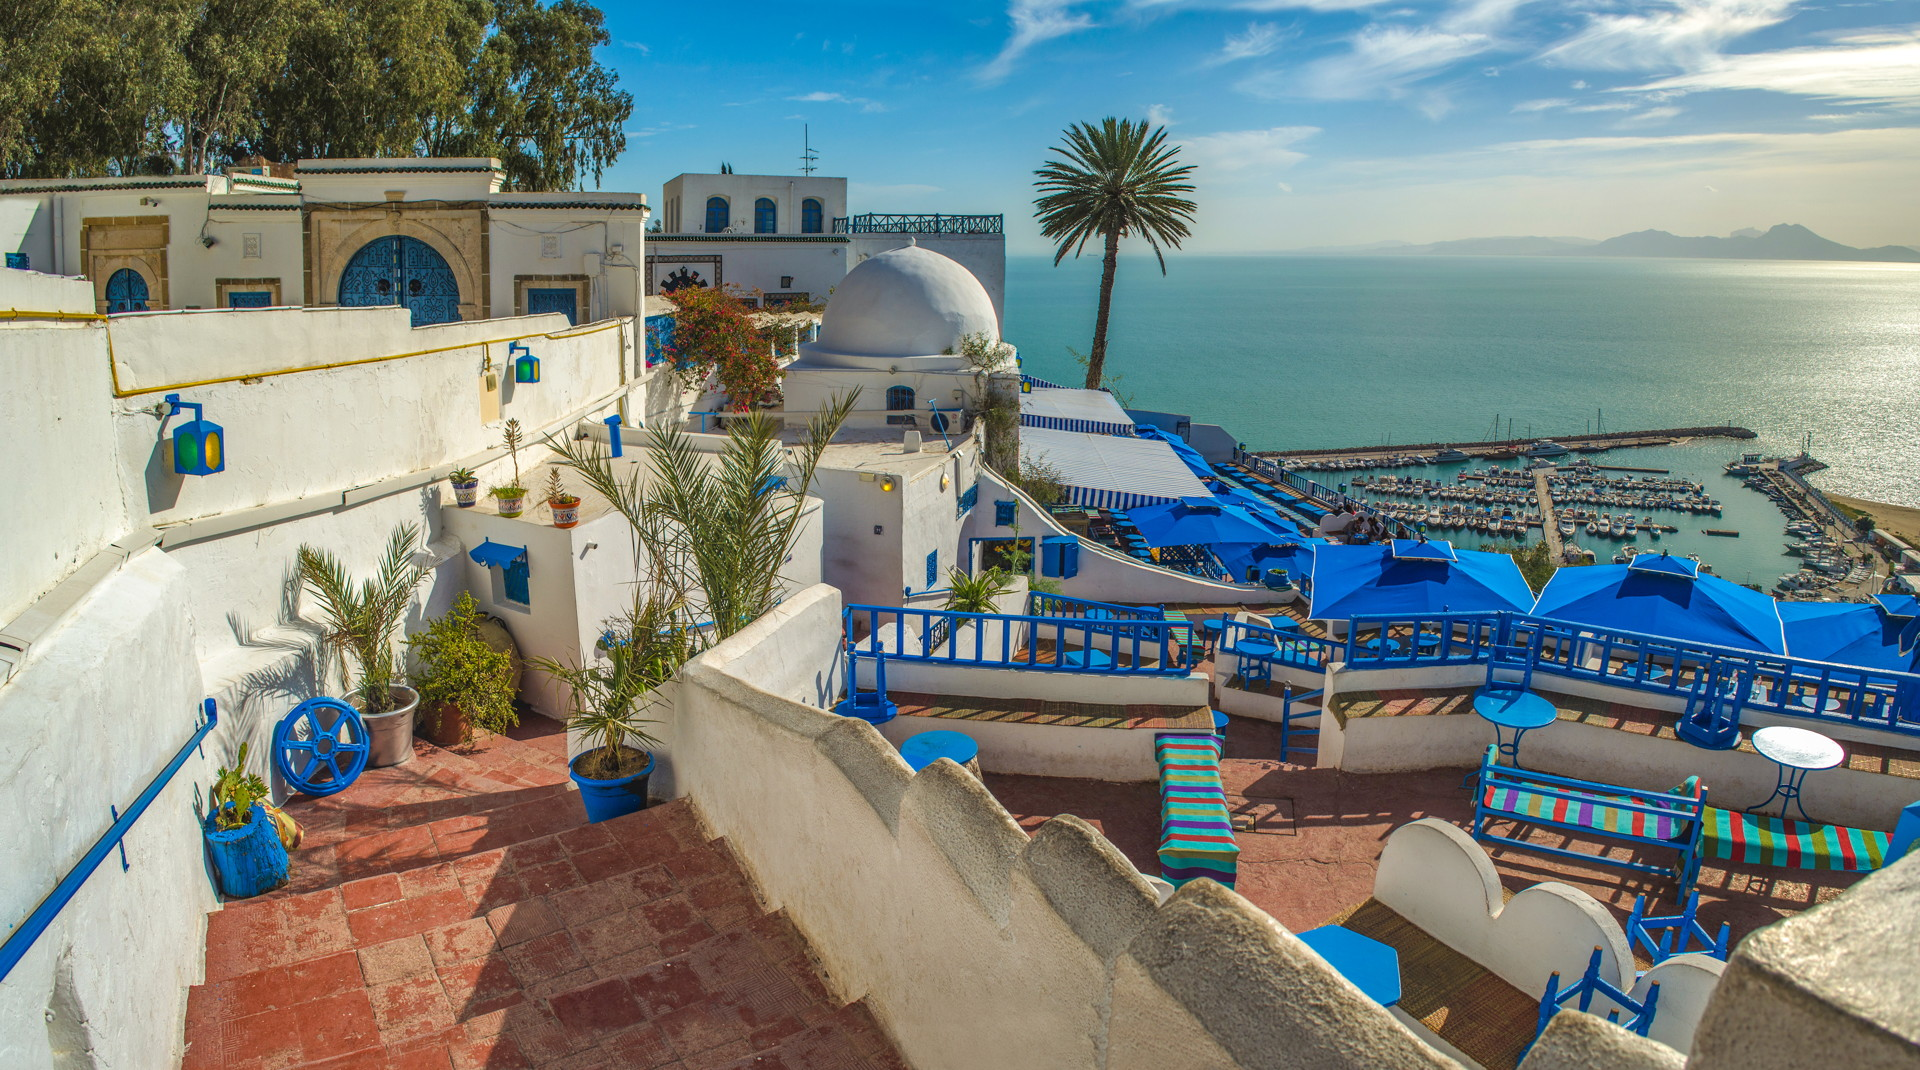 sidi bou said, tunisia what to do in carthage, carthage travel, sidi bou said where to stay, where to stay in Carthage